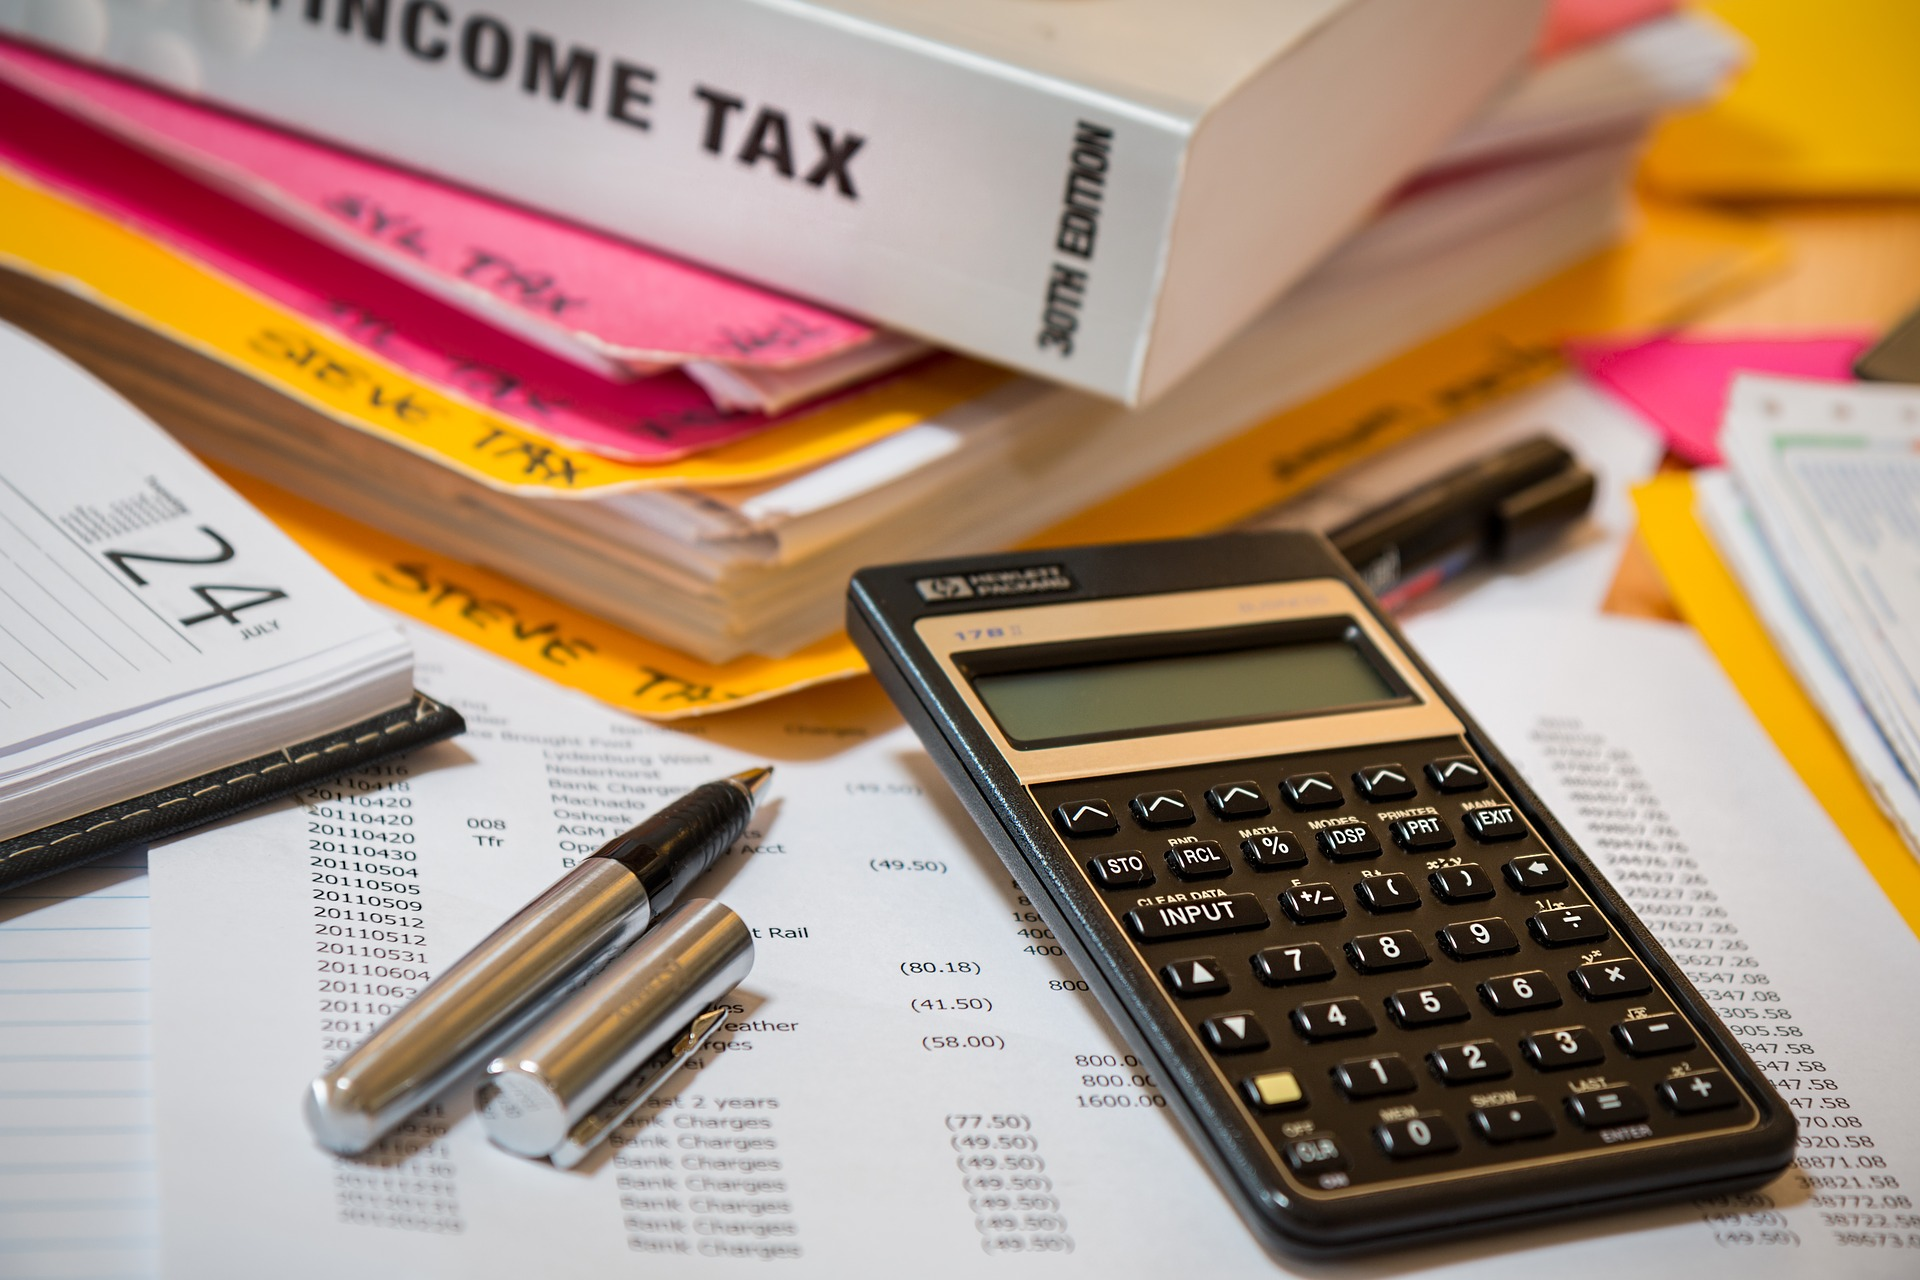 All Companies Accounts Can Be Seen by Tax Office From Now On post's picture